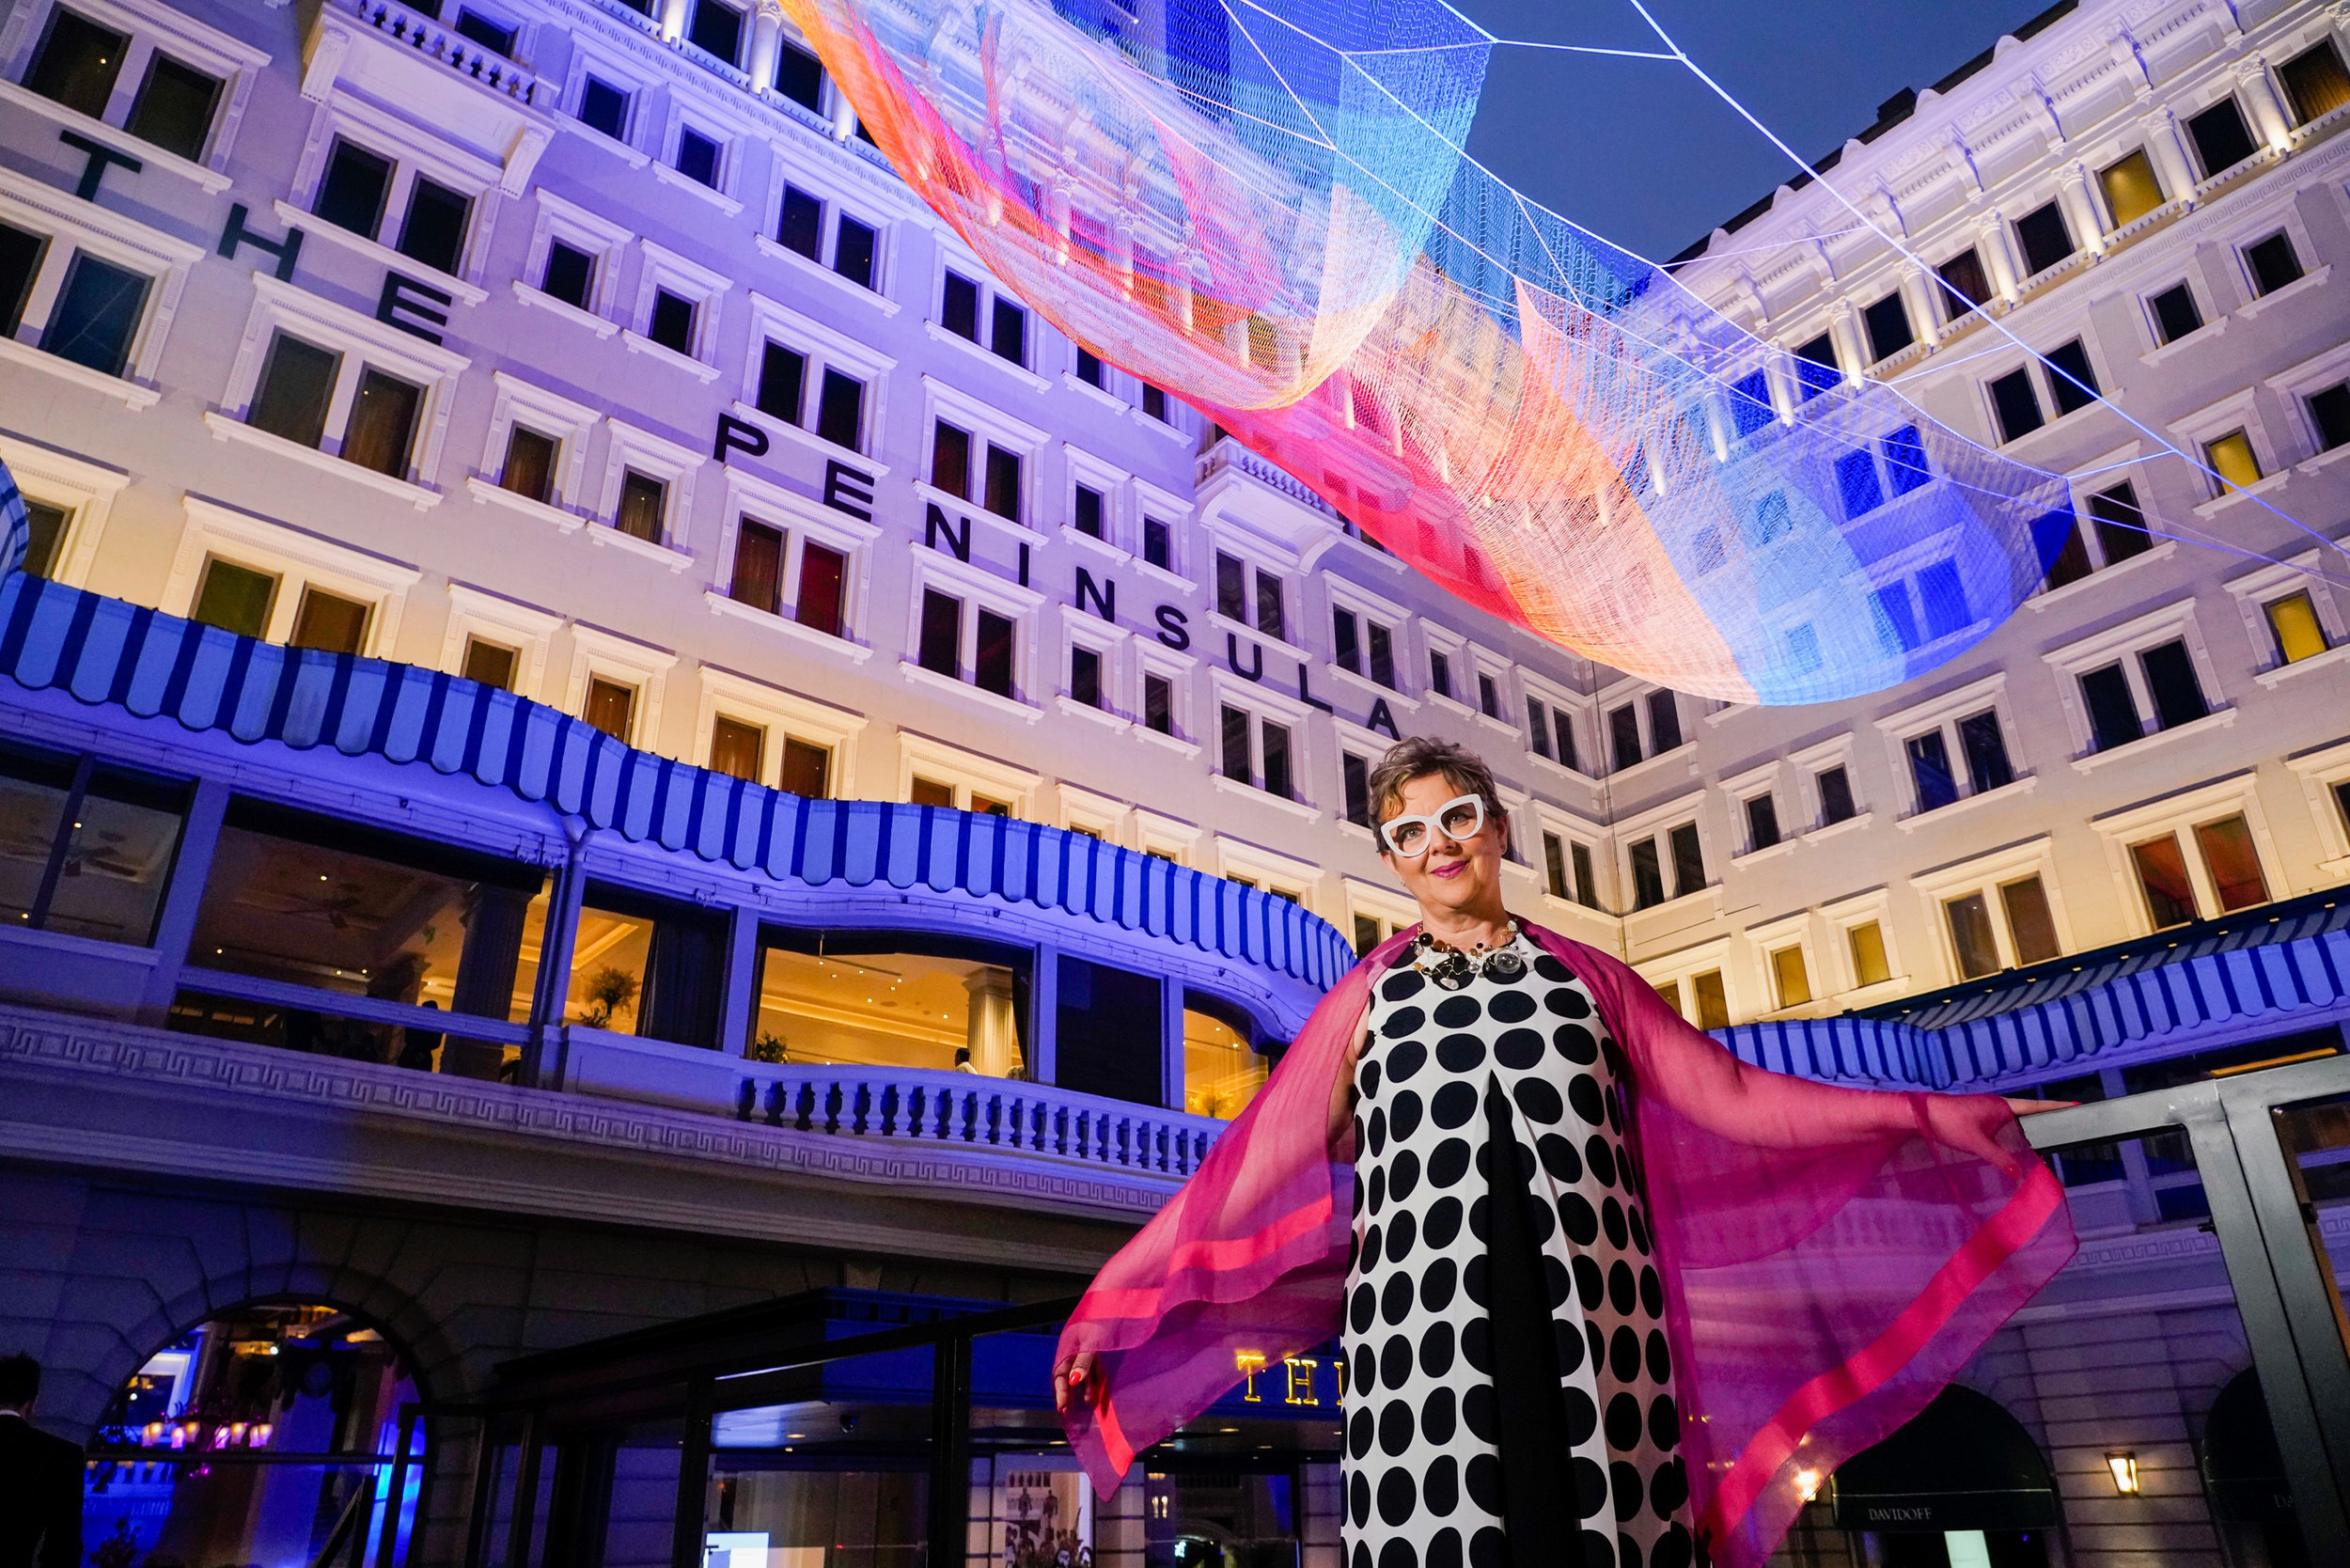 HK_Echelman_PhotoGettyImages_1.jpg